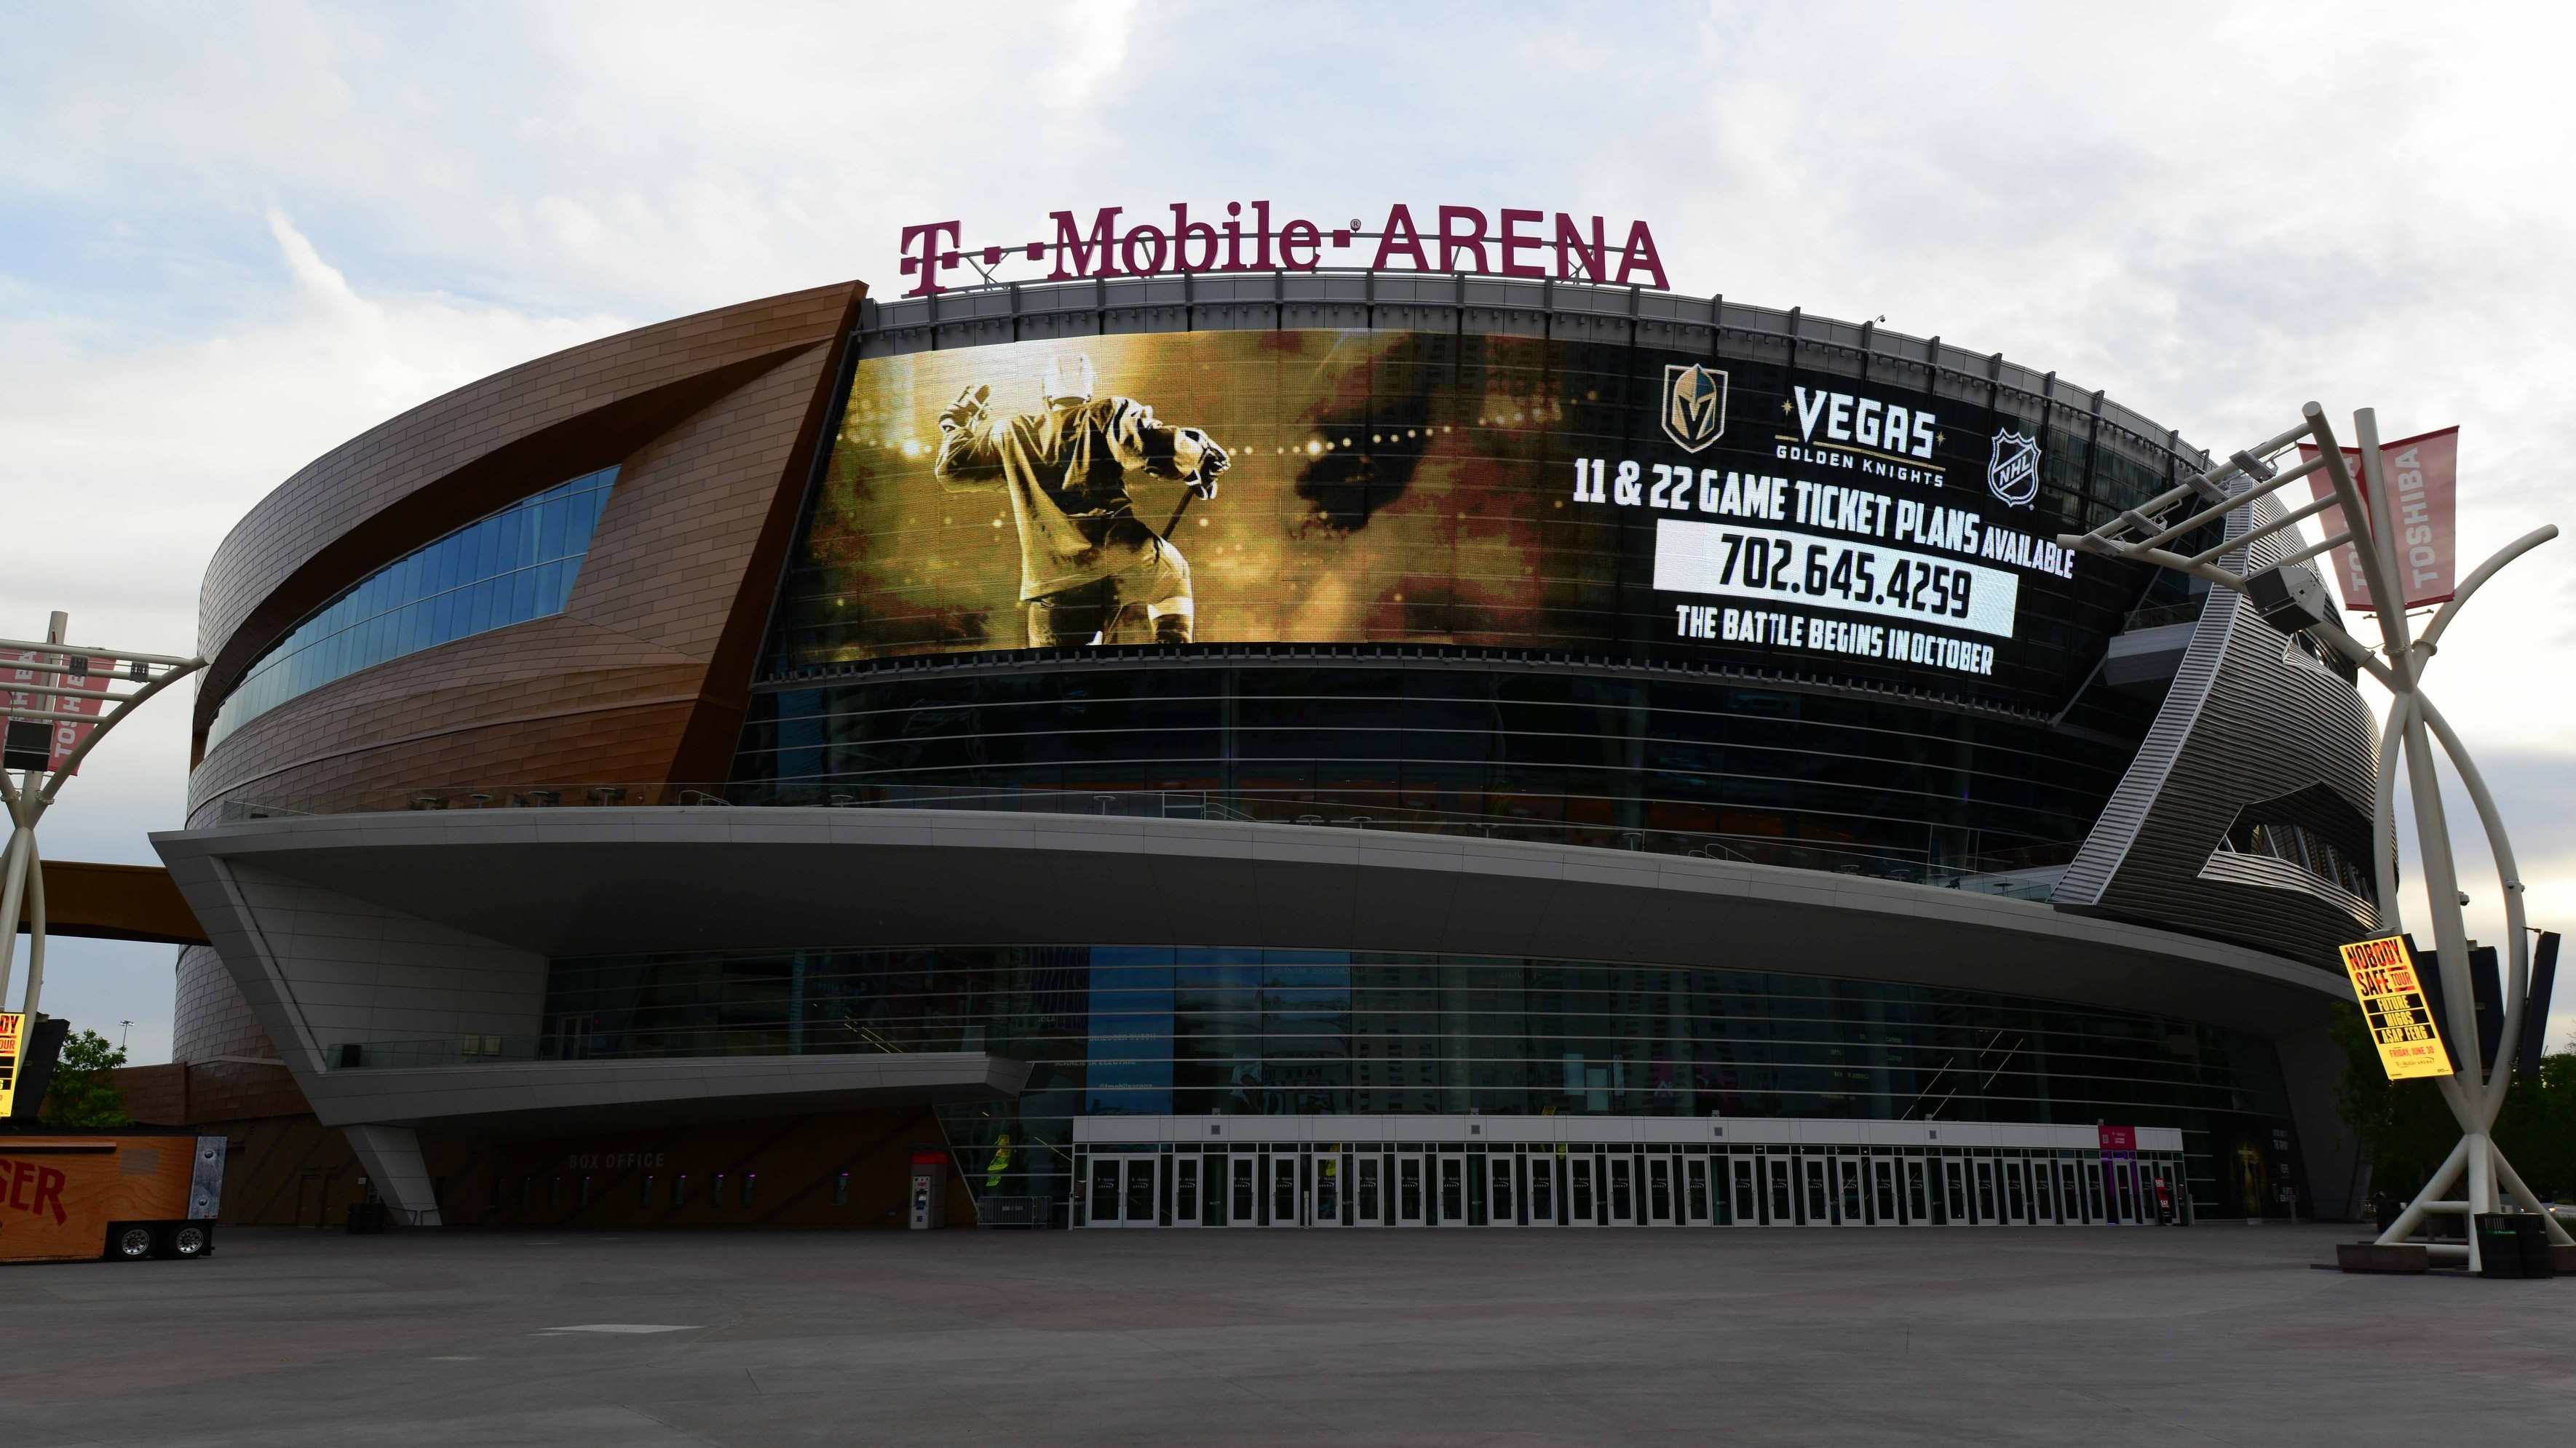 1497883646722-vegas-golden-knights-arena.jpeg?crop=1xw:0